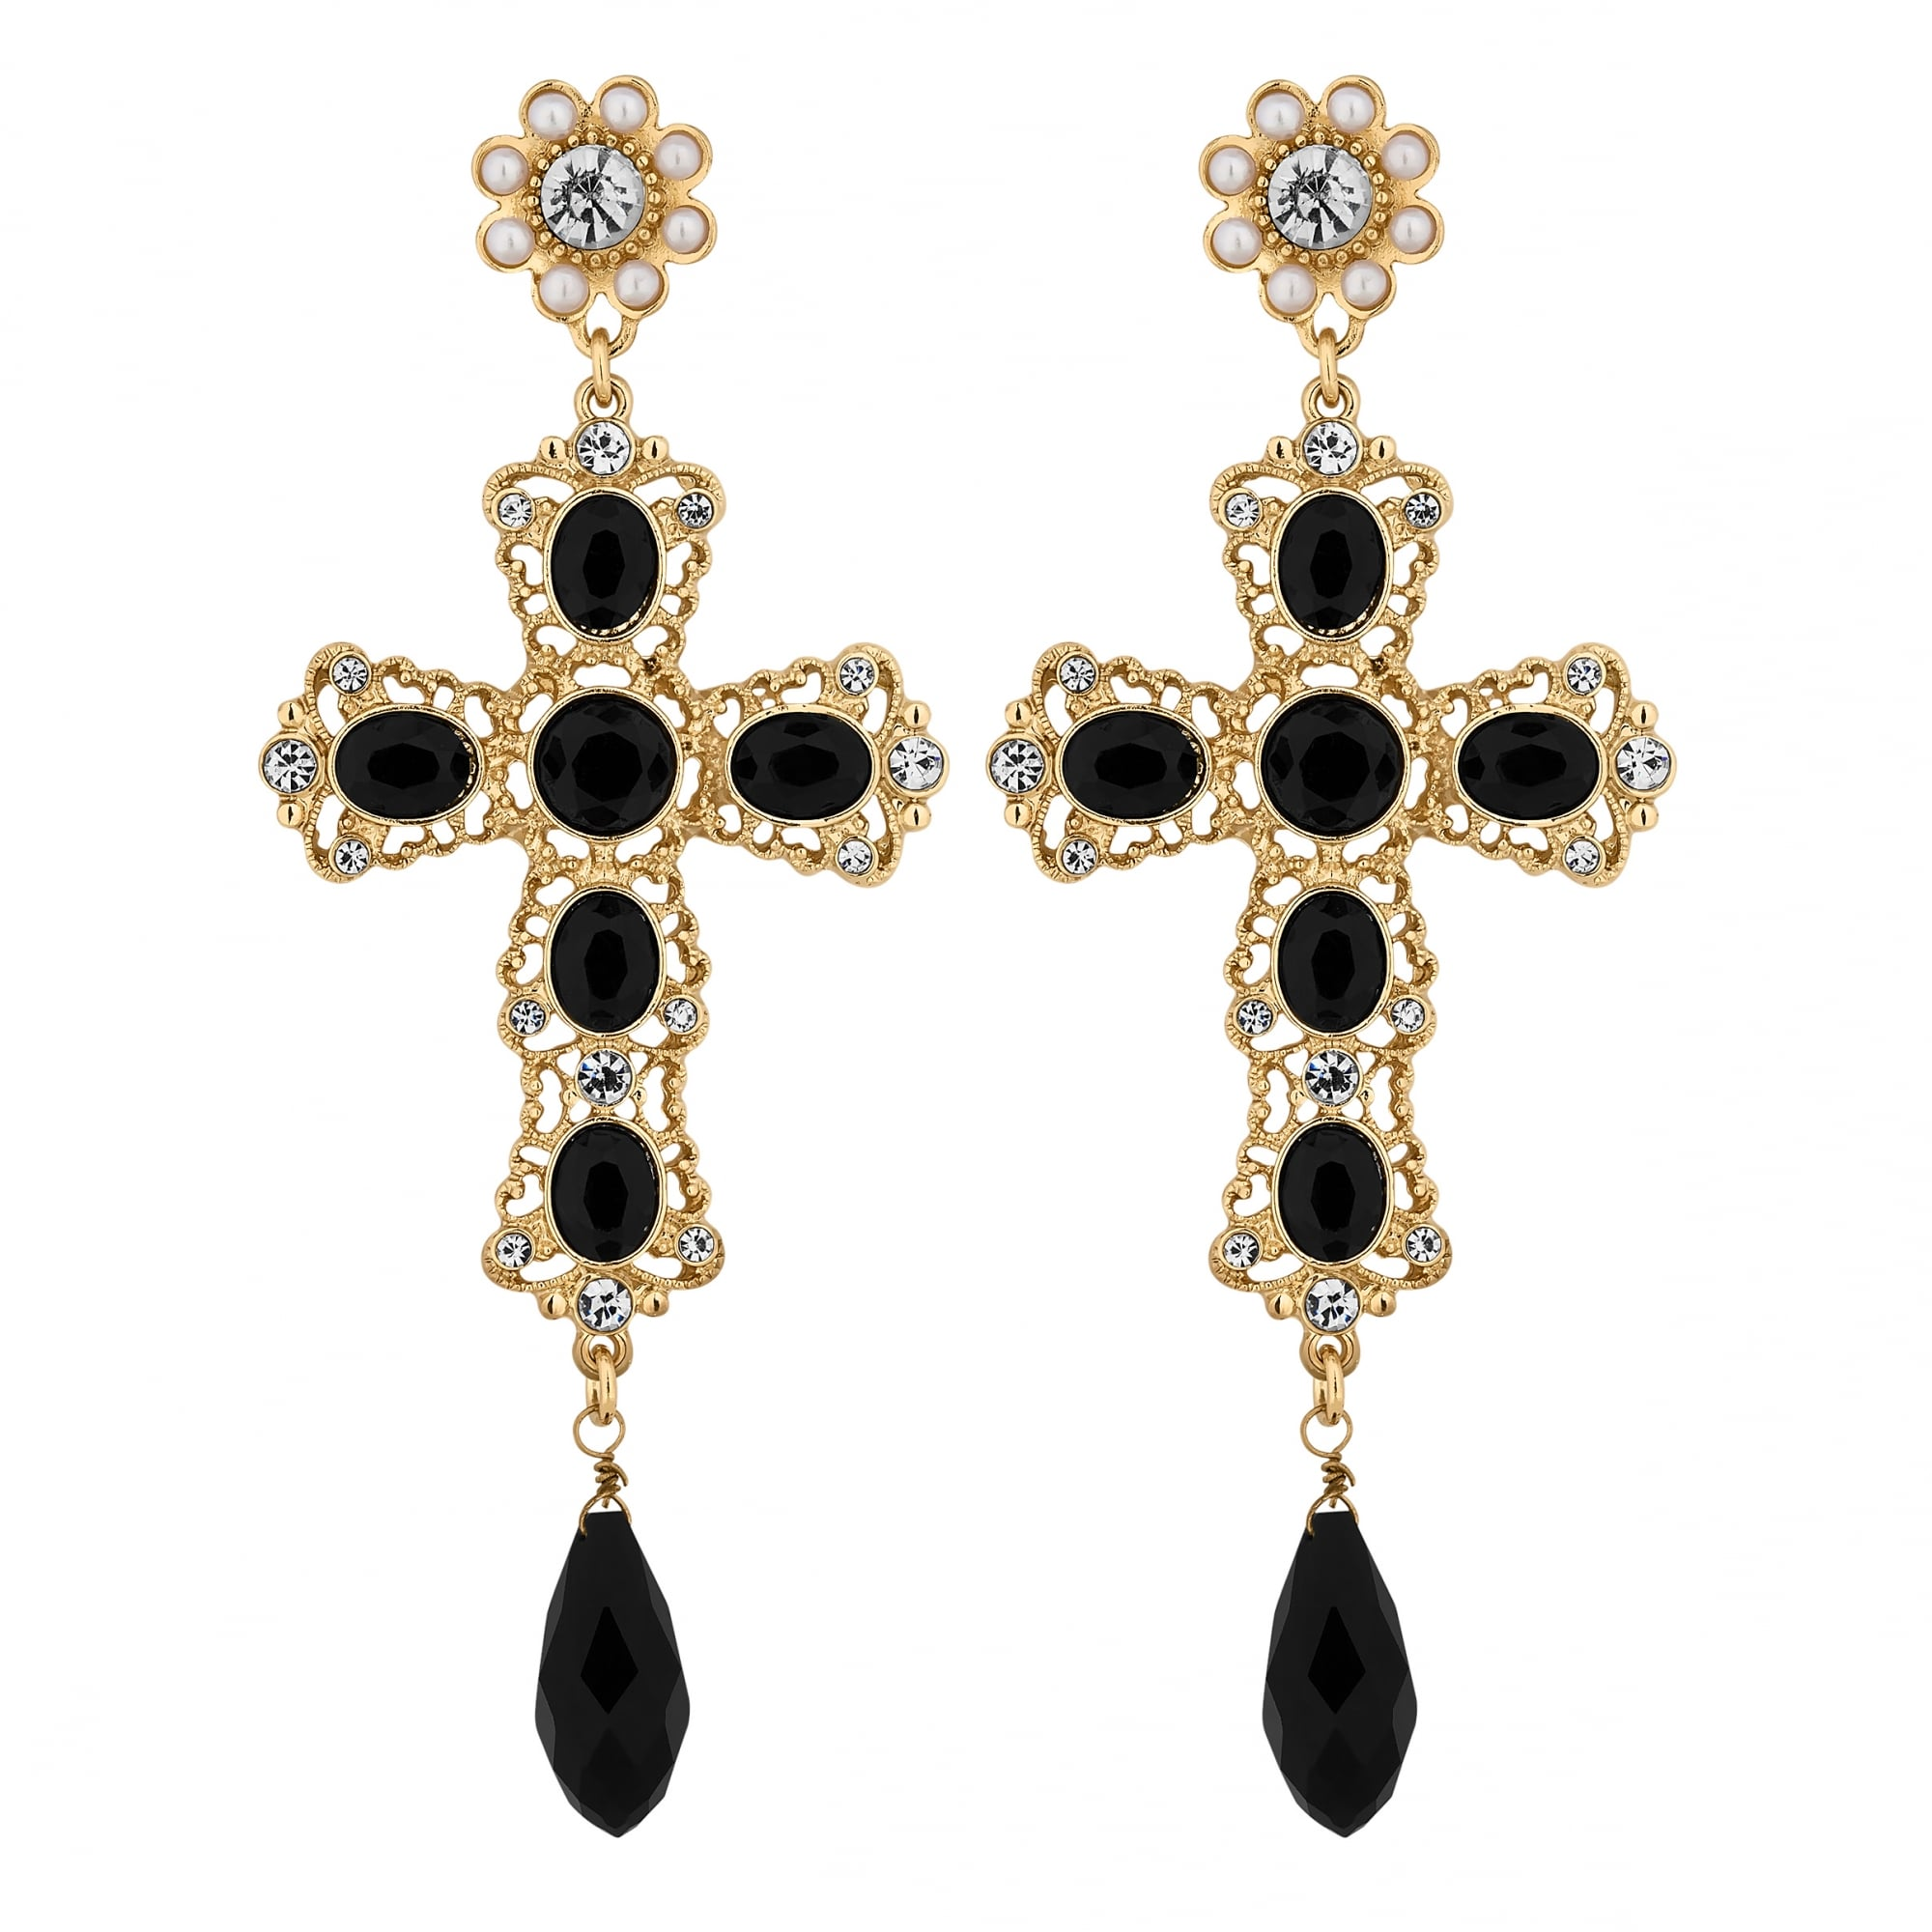 Lipsy Gold Black Statement Cross Drop Earring - Jewellery